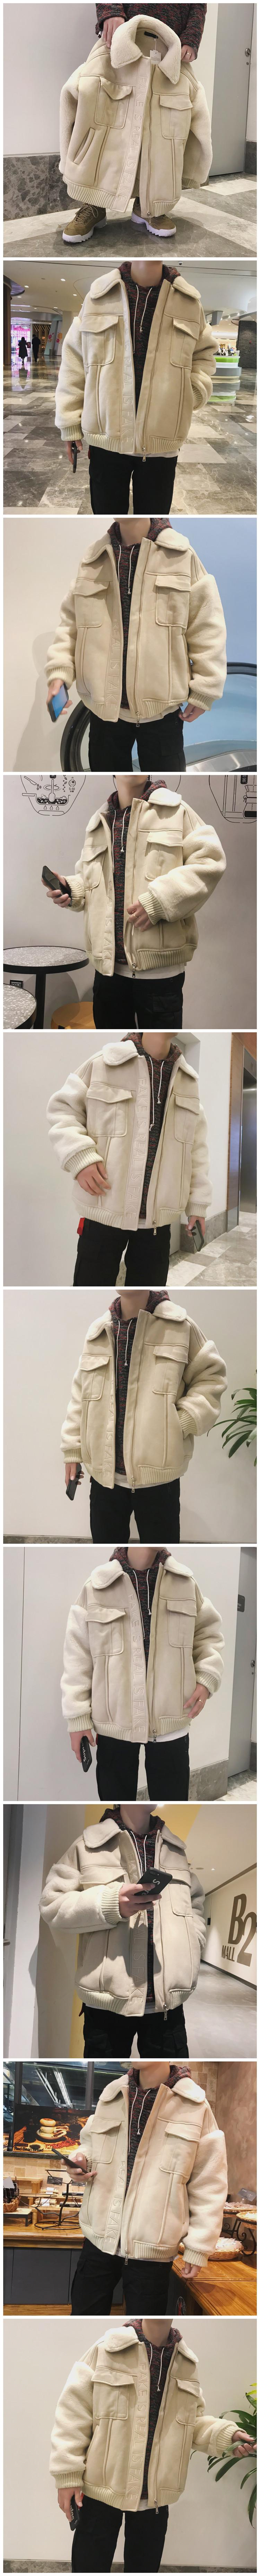 19 winter new man imitation lambs cultivate one's morality cotton-padded clothes and fine hair thickening cotton-padded jacket 1